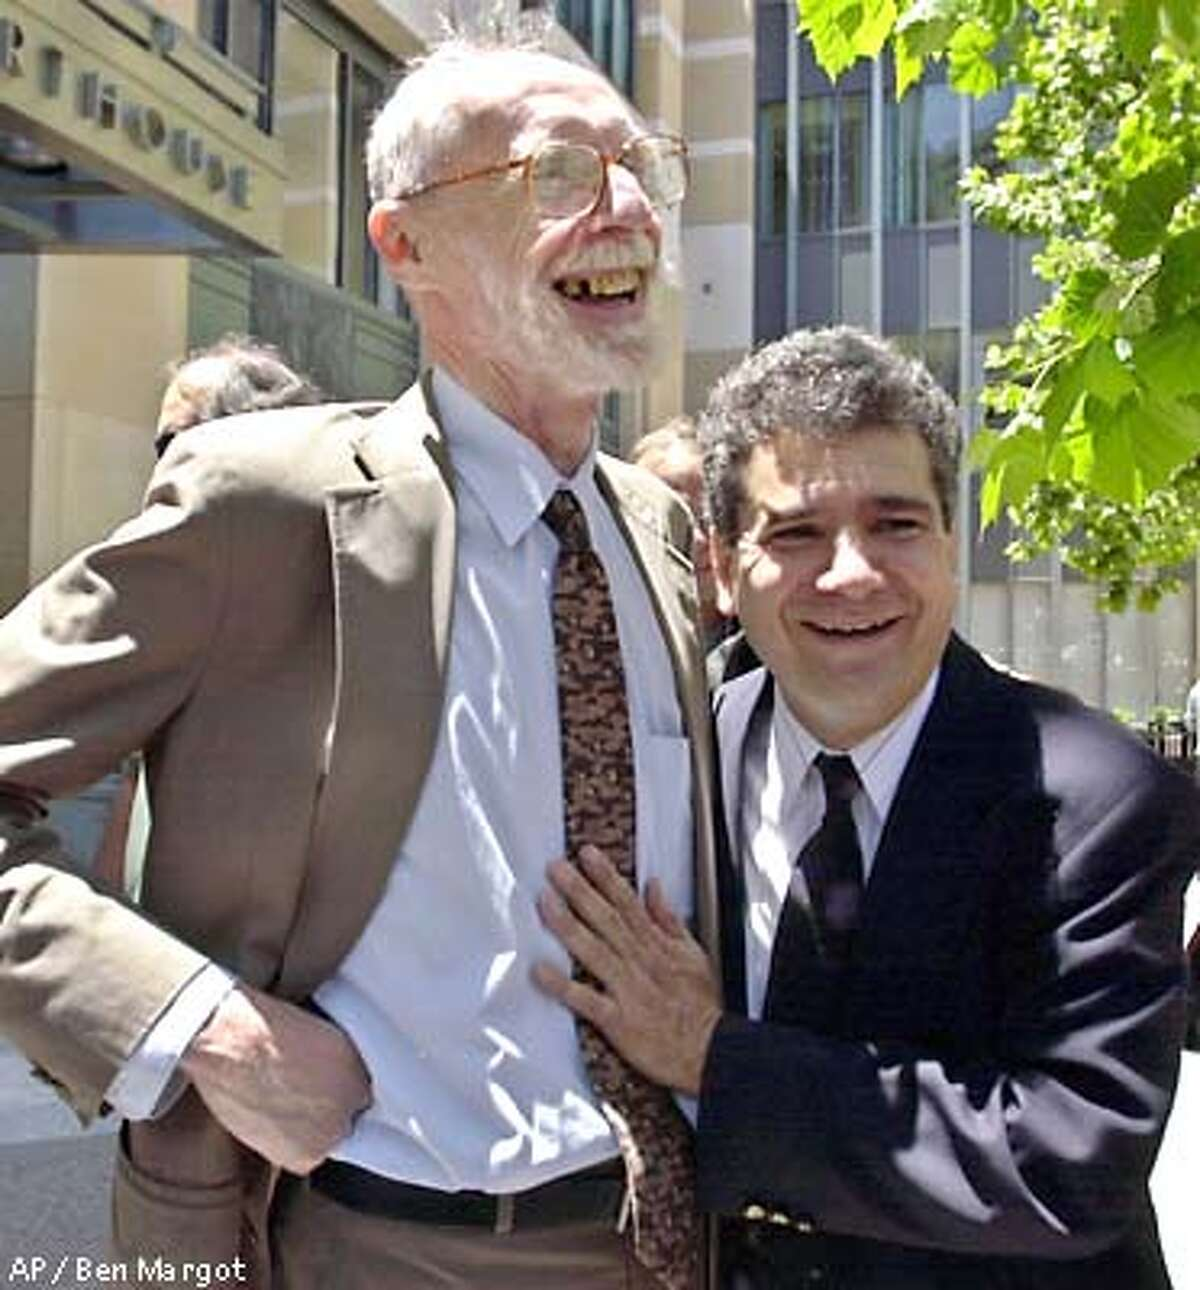 Darryl Cherney, right, hugs his lead attorney Dennis Cunningham Tuesday, June 11, 2002, in Oakland, Calif. Twelve years after they were arrested in the bombing of their own car, two Earth First! activists were awarded $4.4 million Tuesday in a federal suit claiming they were framed by Oakland police and FBI agents. After 17 days of deliberations, jurors awarded the money to activist Darryl Cherney and the estate of Judi Bari, who died of cancer in 1997. (AP Photo/Ben Margot)